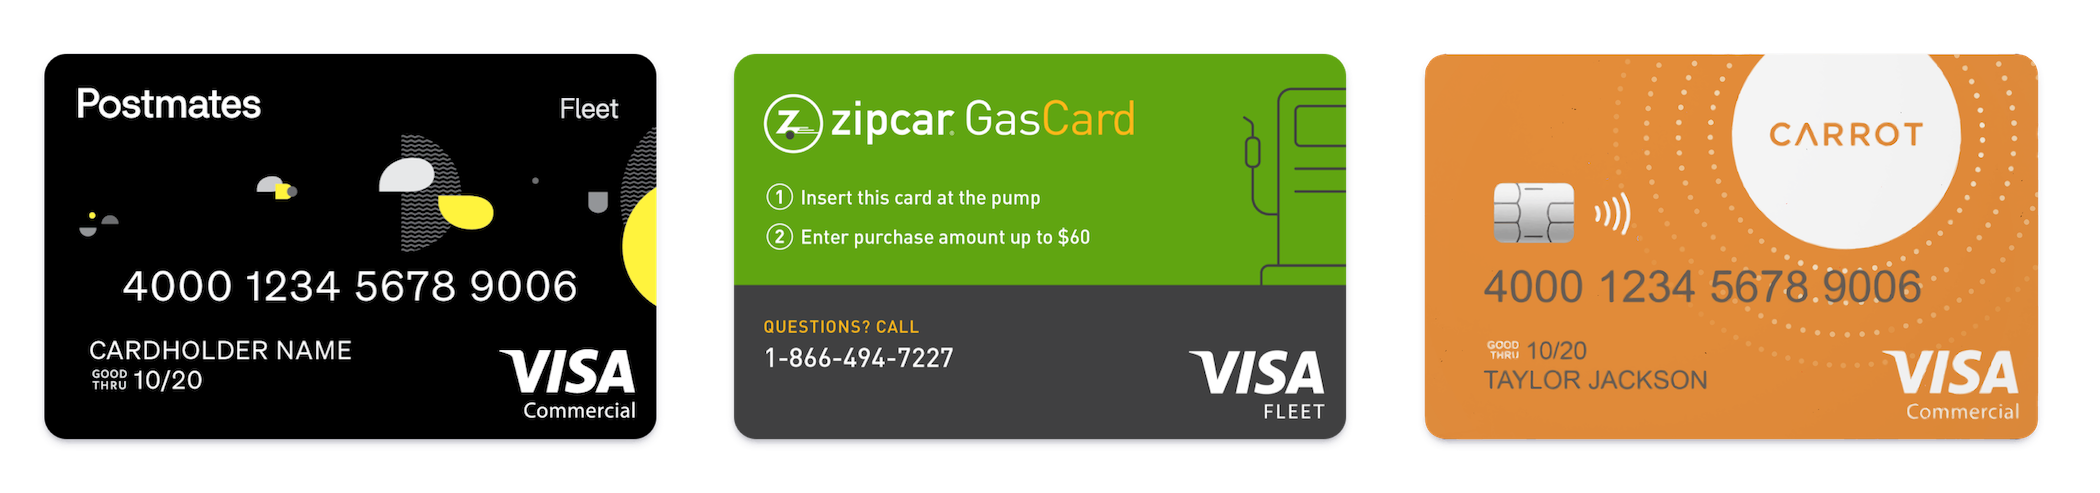 Postmates, Zipcar, and Carrot designed cards on Stripe Issuing.